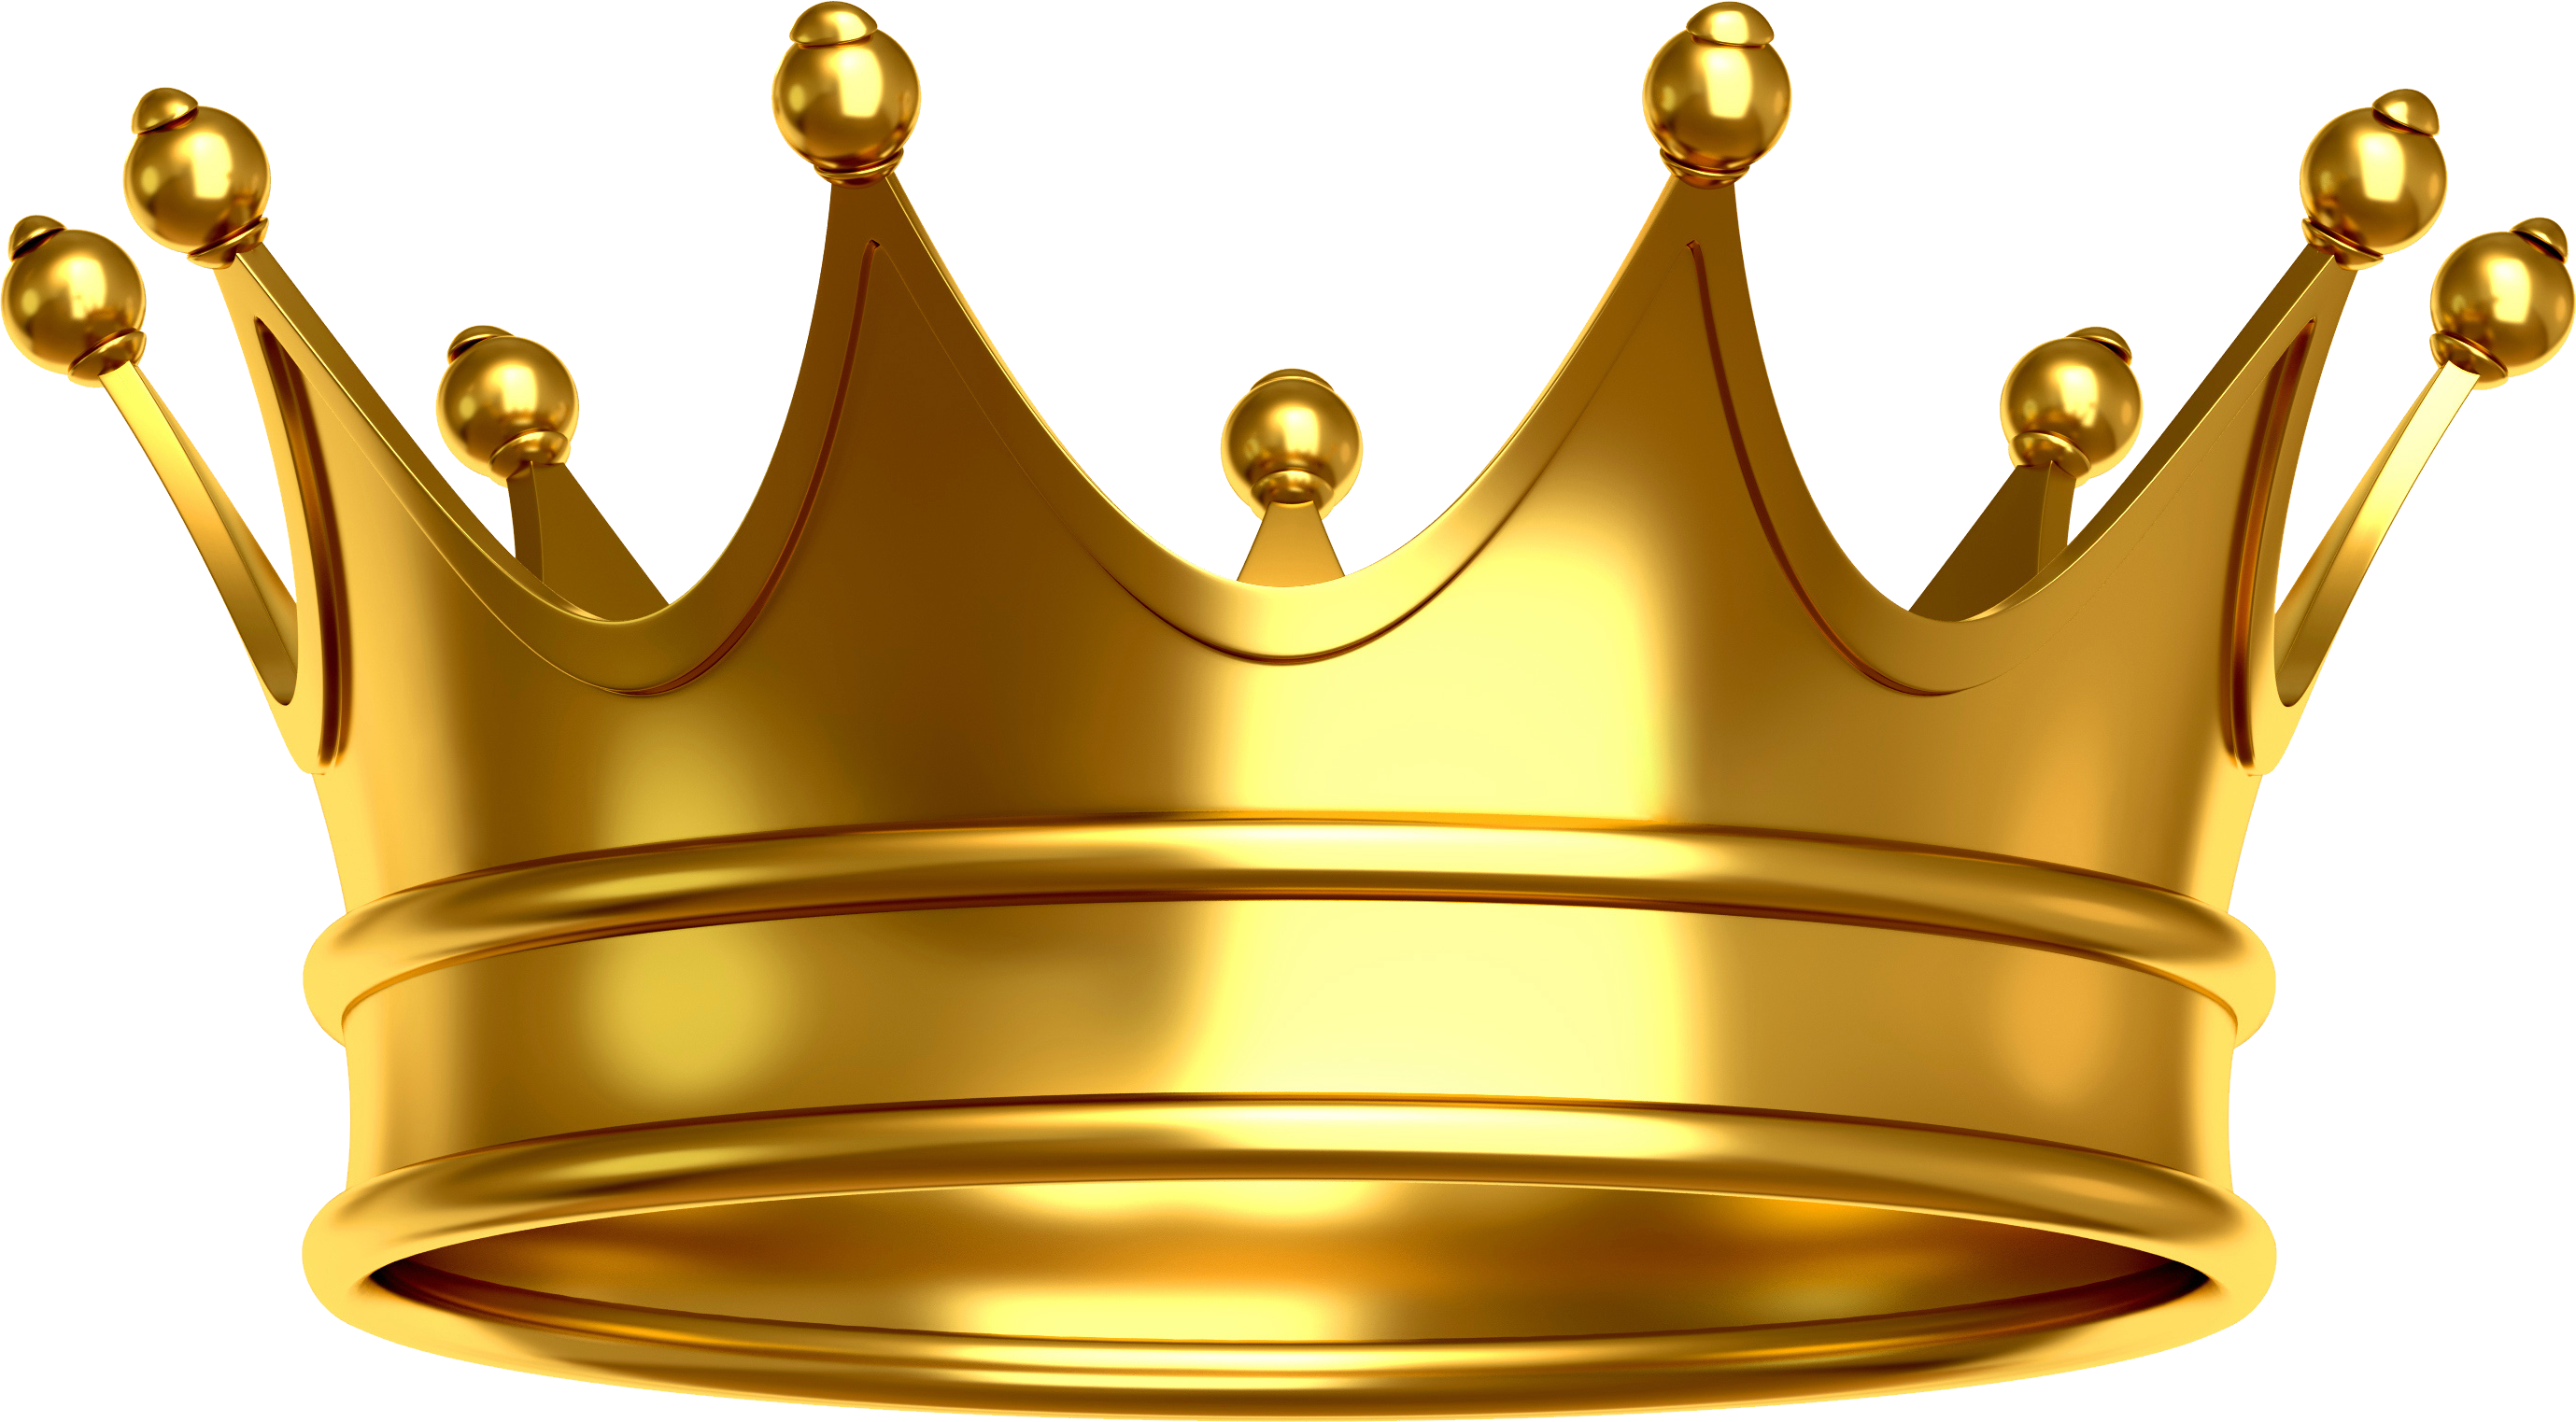 Crown png. Images free download